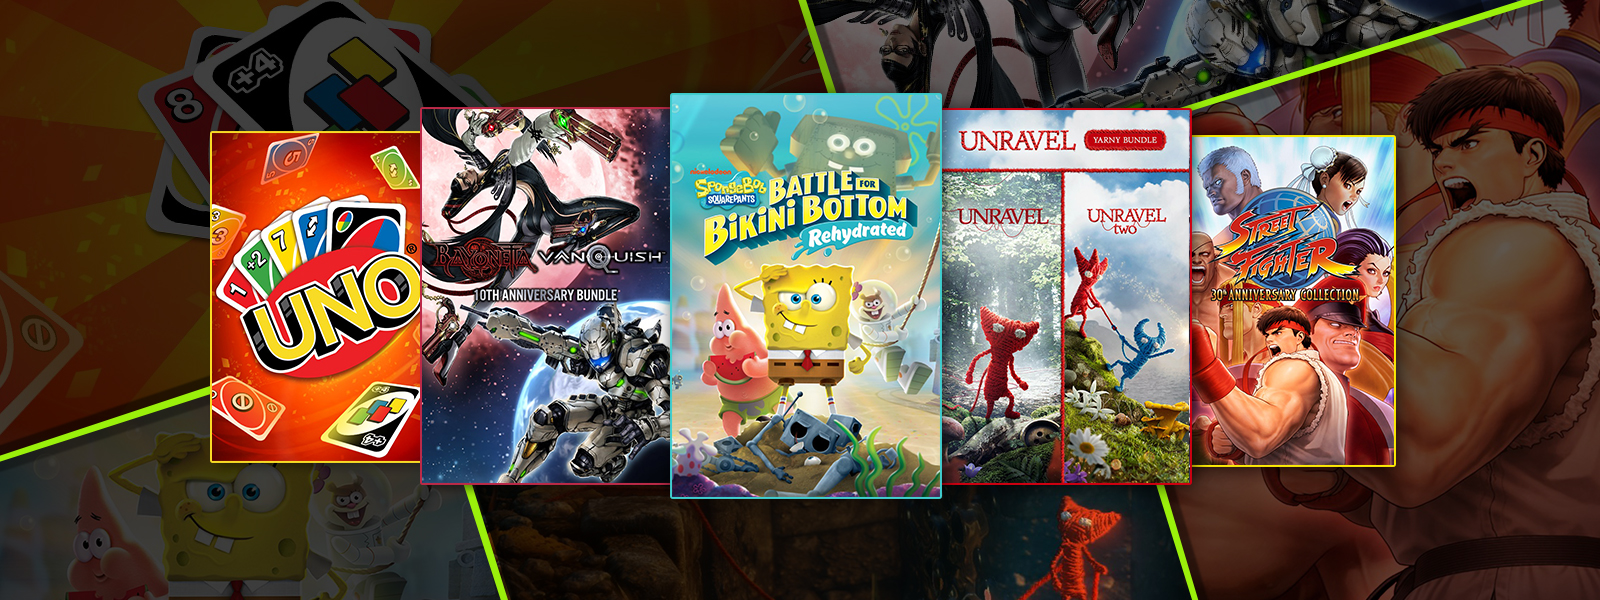 A collection of games that are part of the Retro Fun sale, including Uno, Unravel Yarny Bundle and Street Fighter 30th Anniversary Collection.